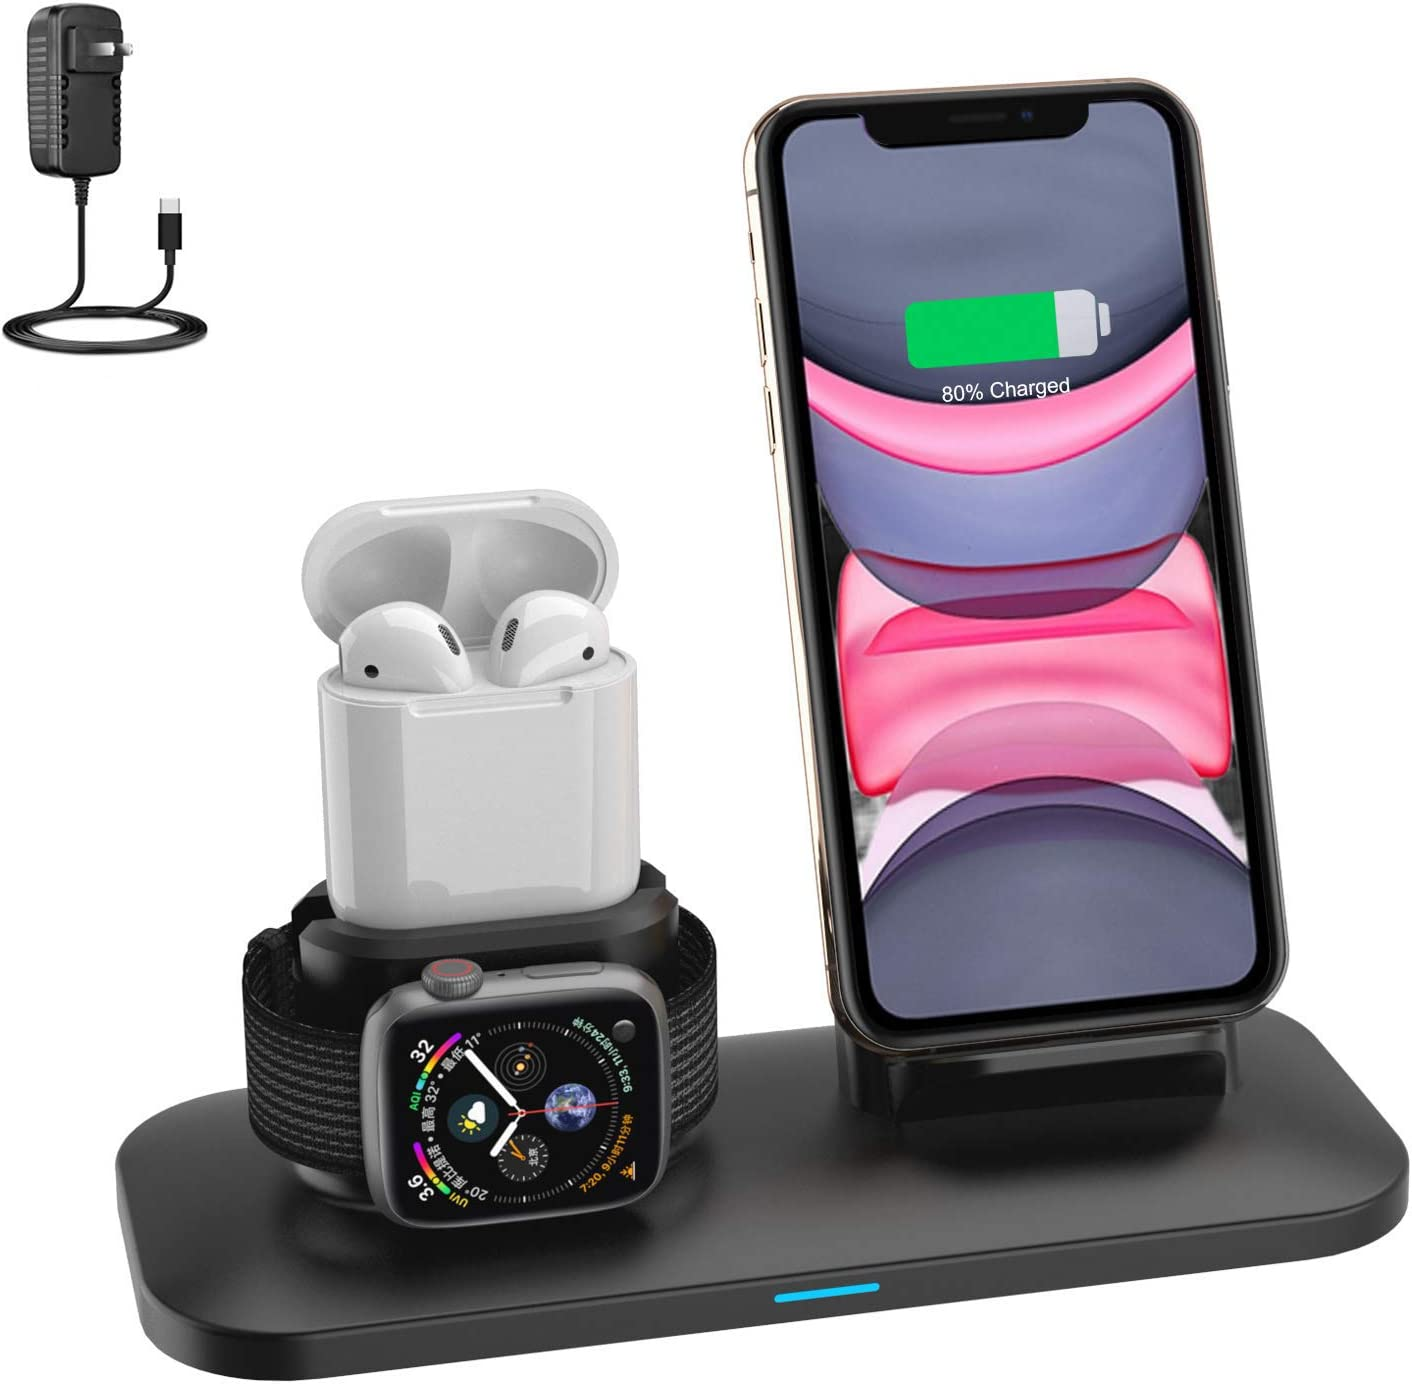 Wireless Charger,3 in 1 Wireless Charging Stand for iPhone Airpods and Apple Watch,Qi Fast Wireless Charging Station Compatible for iPhone 11/11 Pro/X/XR/Xs/xs max(Built-in iWatch Charger)